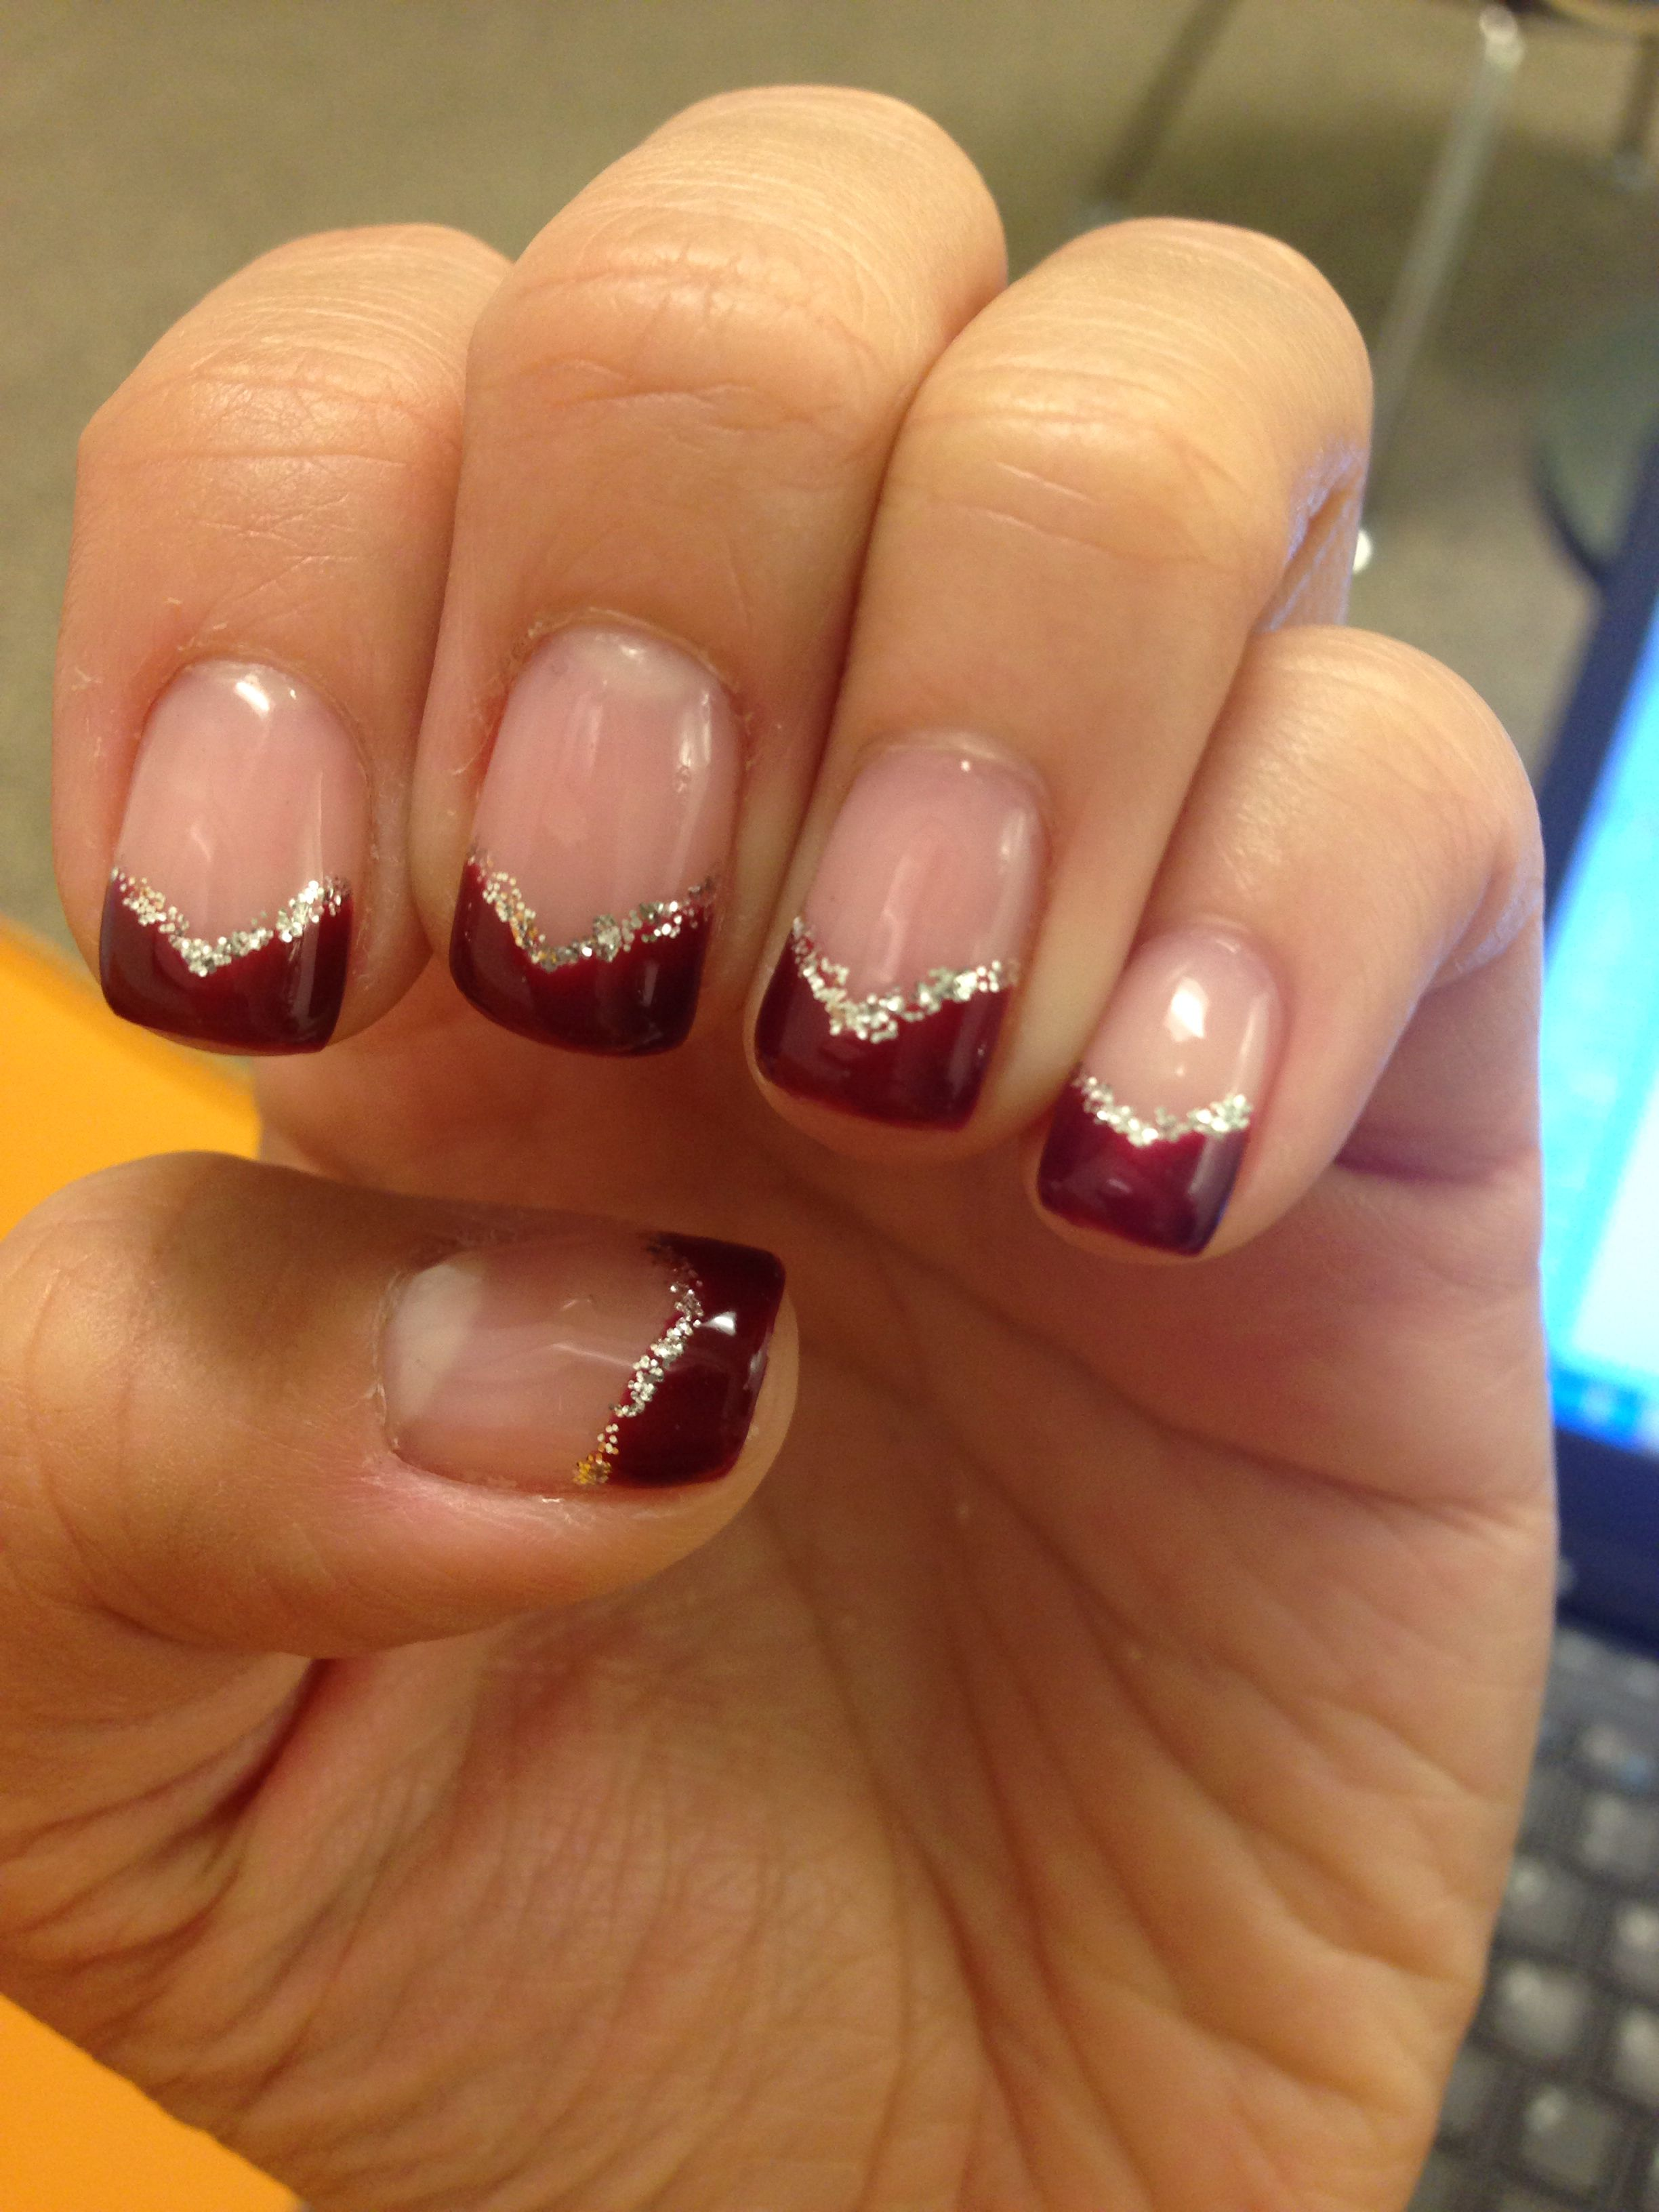 Red Triangle Tip Nails With Silver Glitter Cly Yet Festive For The Holidays